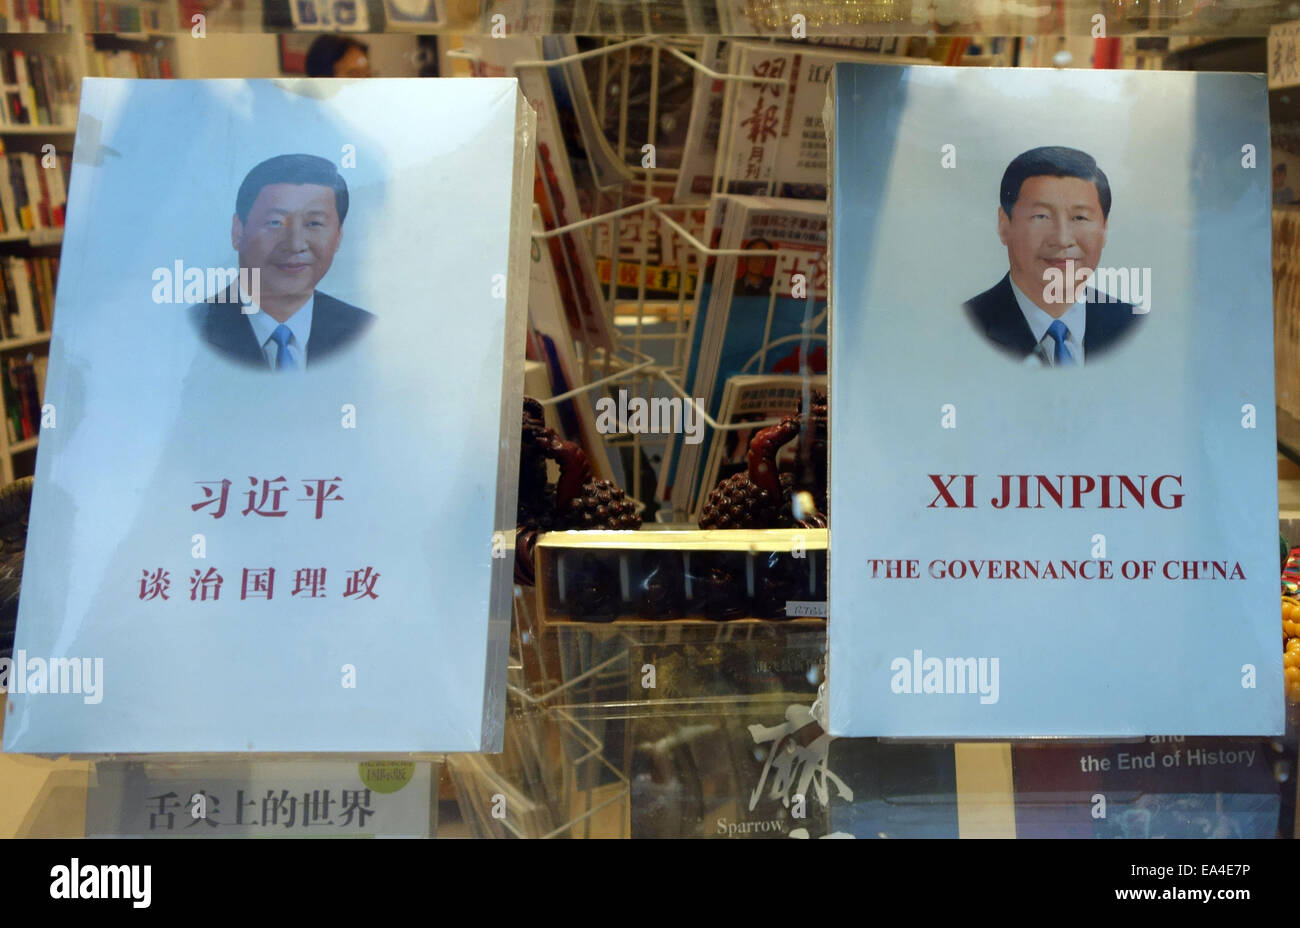 Book 'The Governance of China' by Chinese President Xi Jinping in Chinatown shop window, London - Stock Image